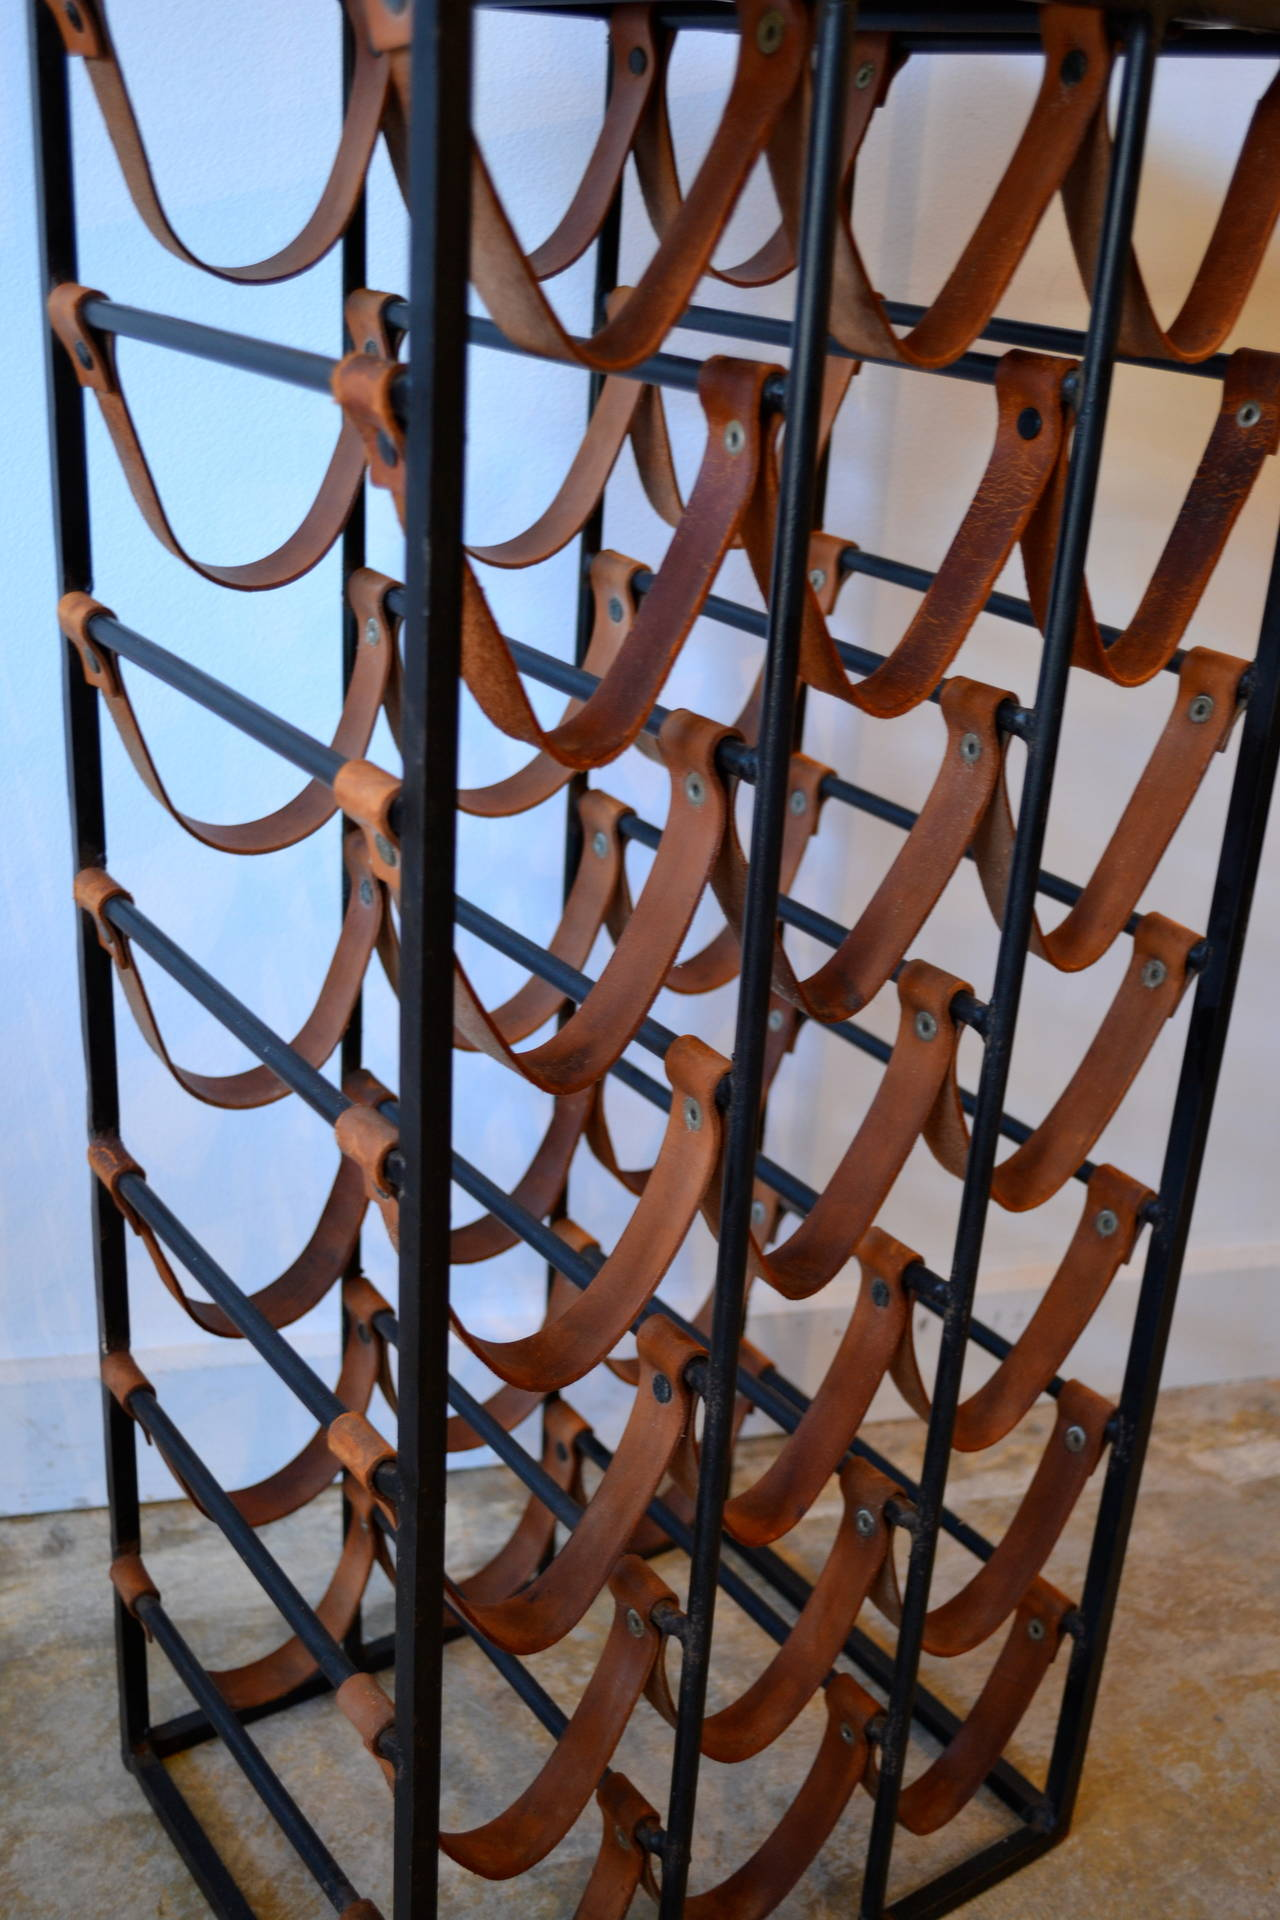 Pair of Wrought Iron and Butcher Block Wine Racks by Arthur Umanoff, 1950s In Good Condition For Sale In Bedford Hills, NY